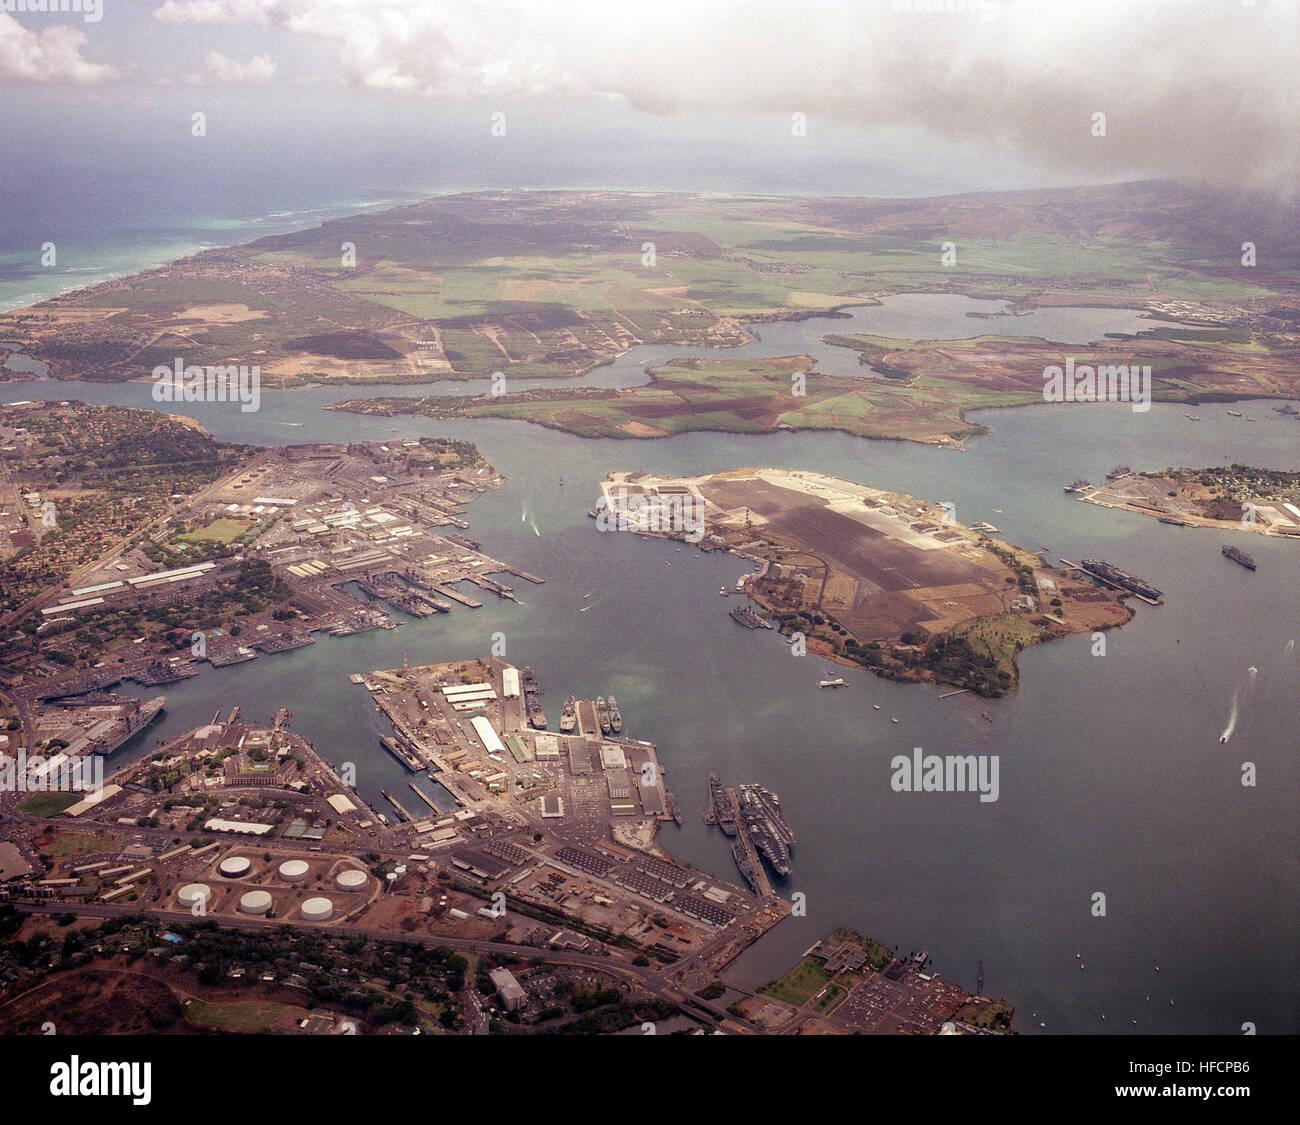 A Low Oblique Aerial View Of Pearl Harbor Hawaii Showing The Gathering Ships